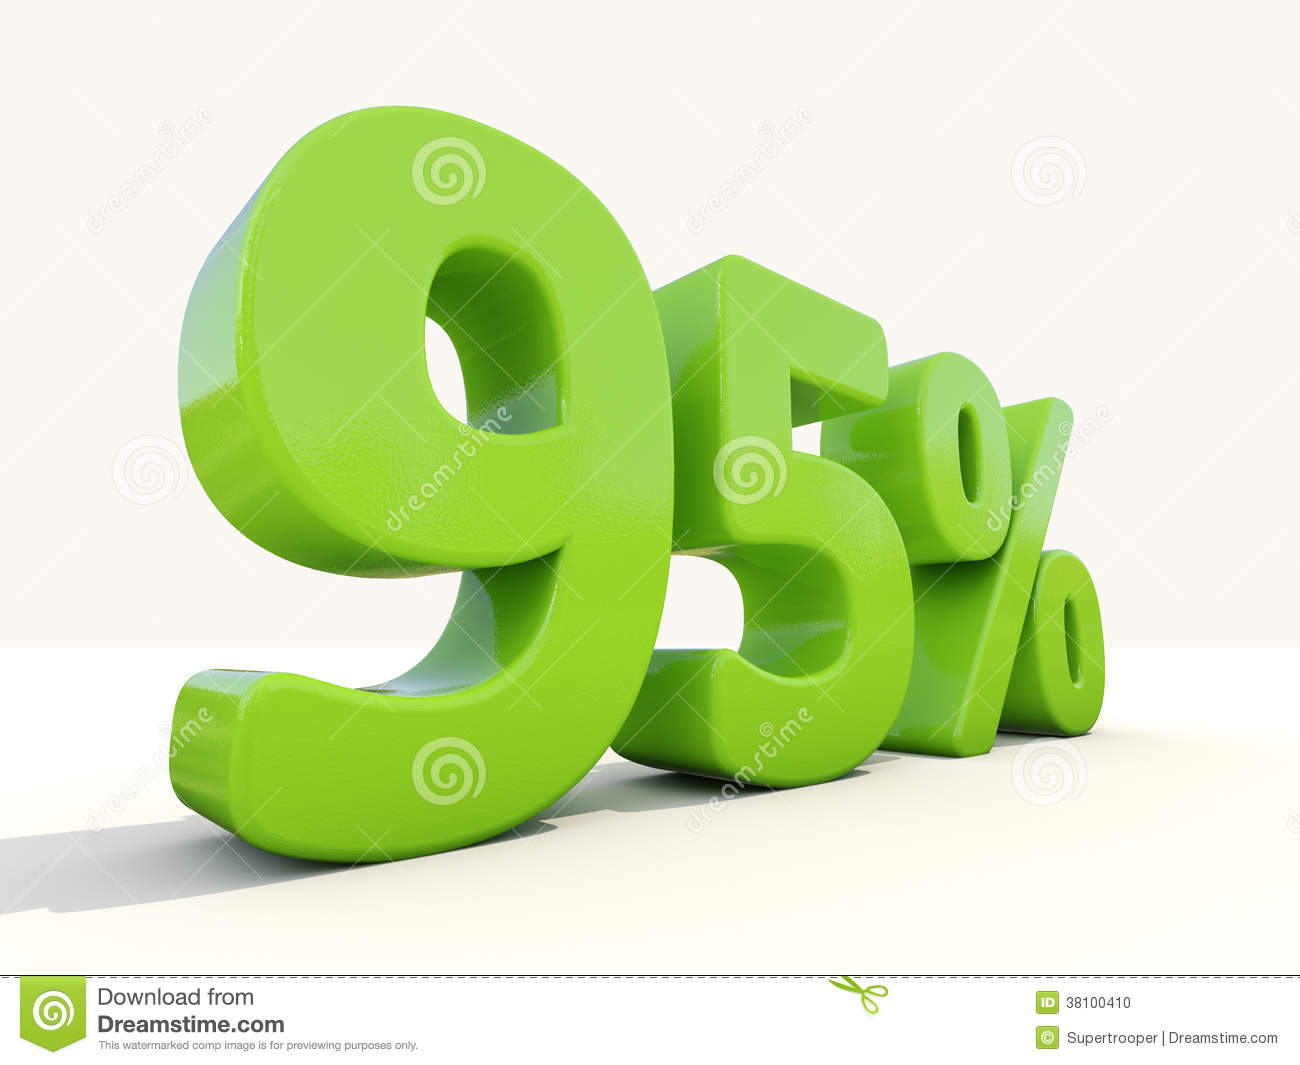 Download 95% Percentage Rate Icon On A White Background Stock Photo - Image of figure, cost: 38100410